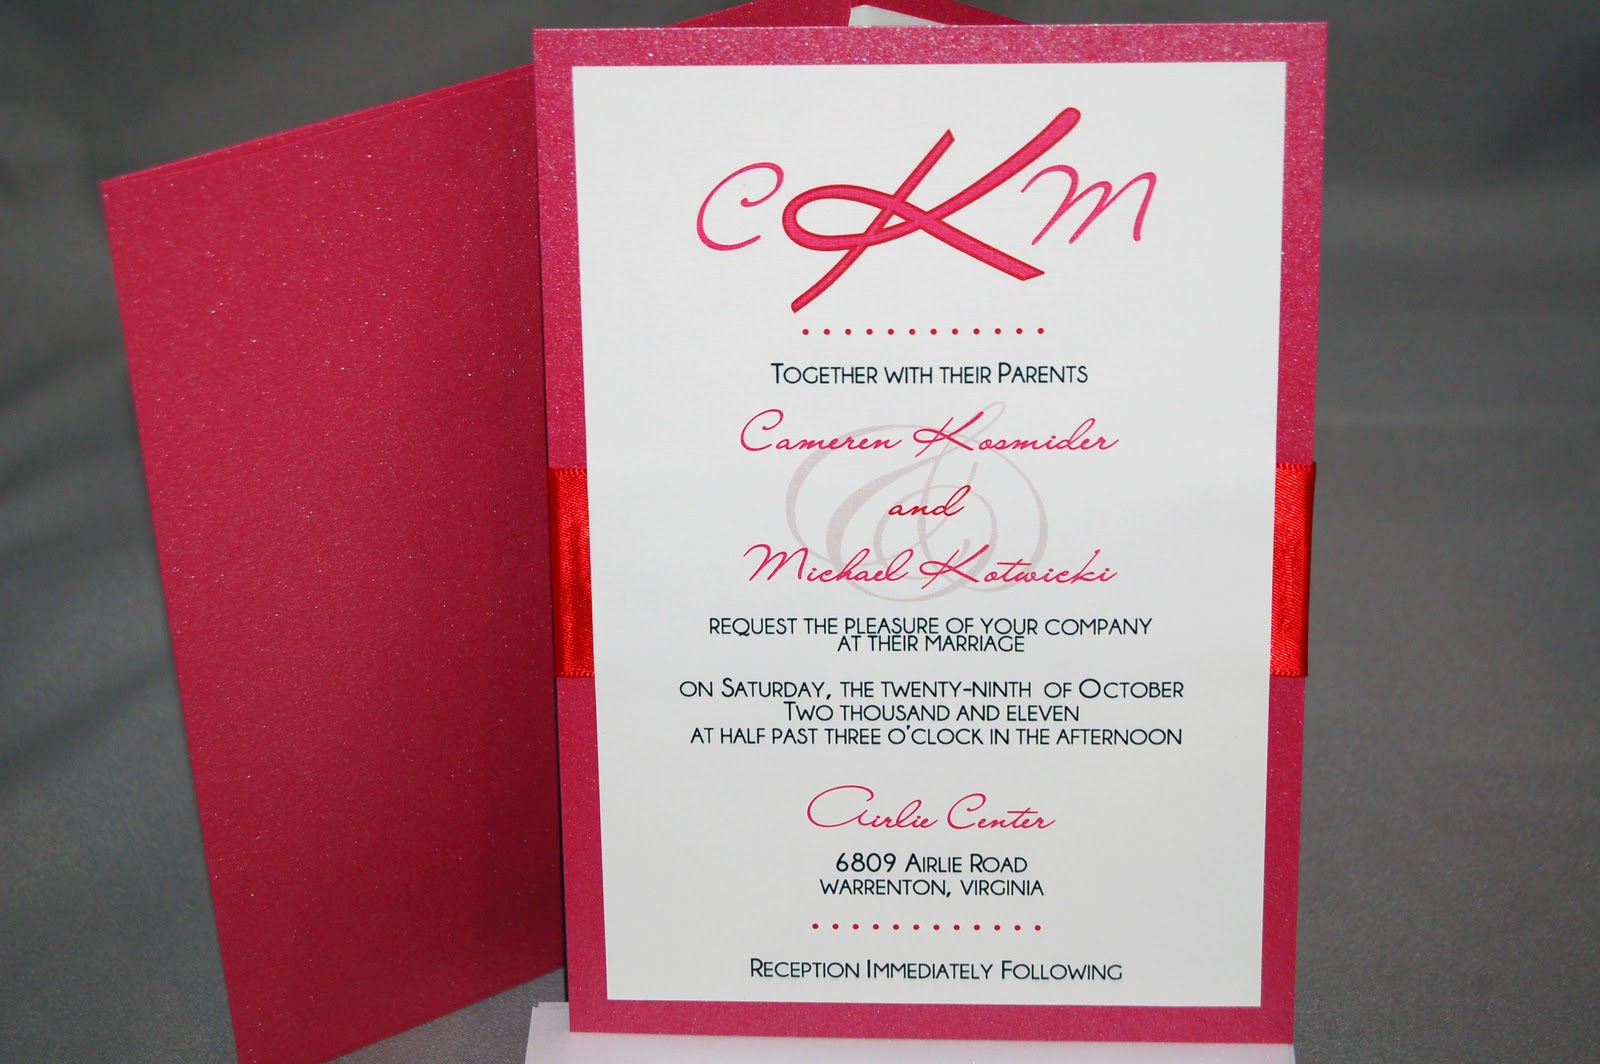 Fine Prints: Cami\'s Dark Pink and Red Wedding Invitations Featuring ...